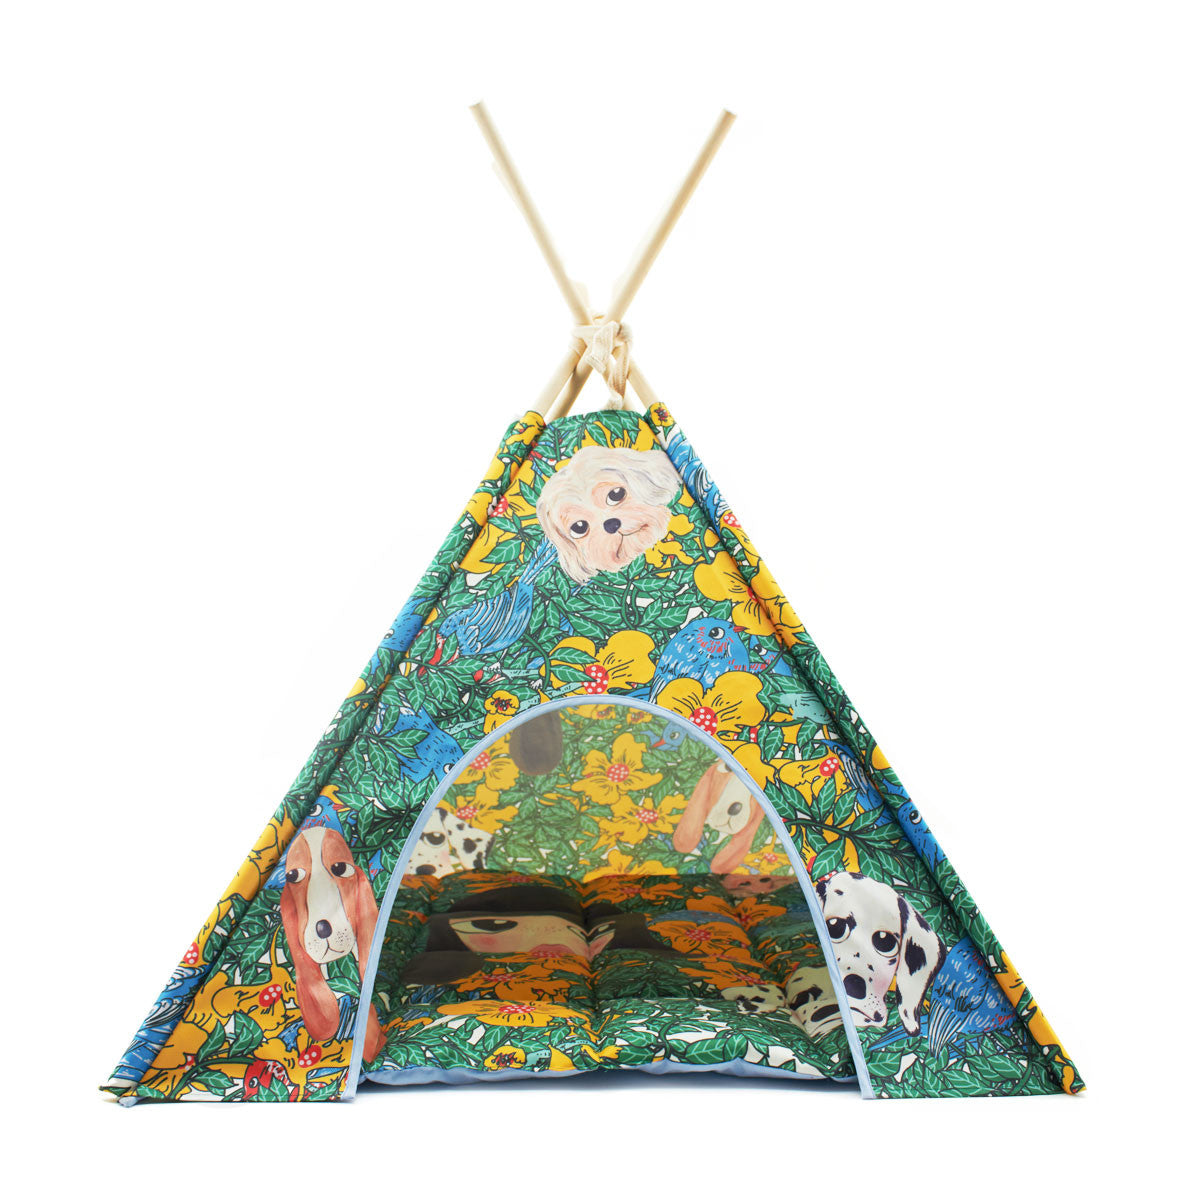 A Teepee for your little ones